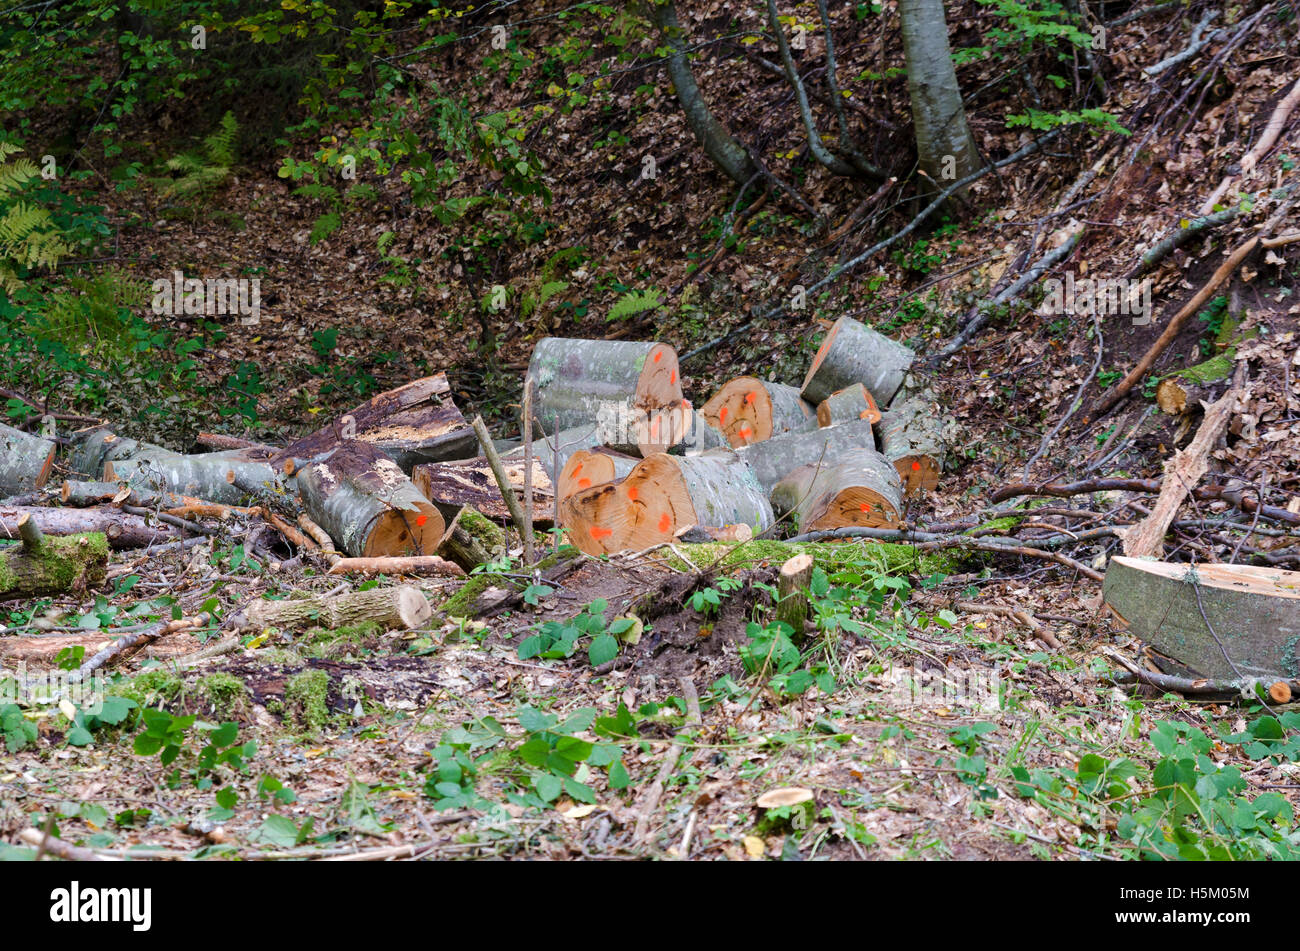 Logging in the wood.  Lumber industry - Stock Image